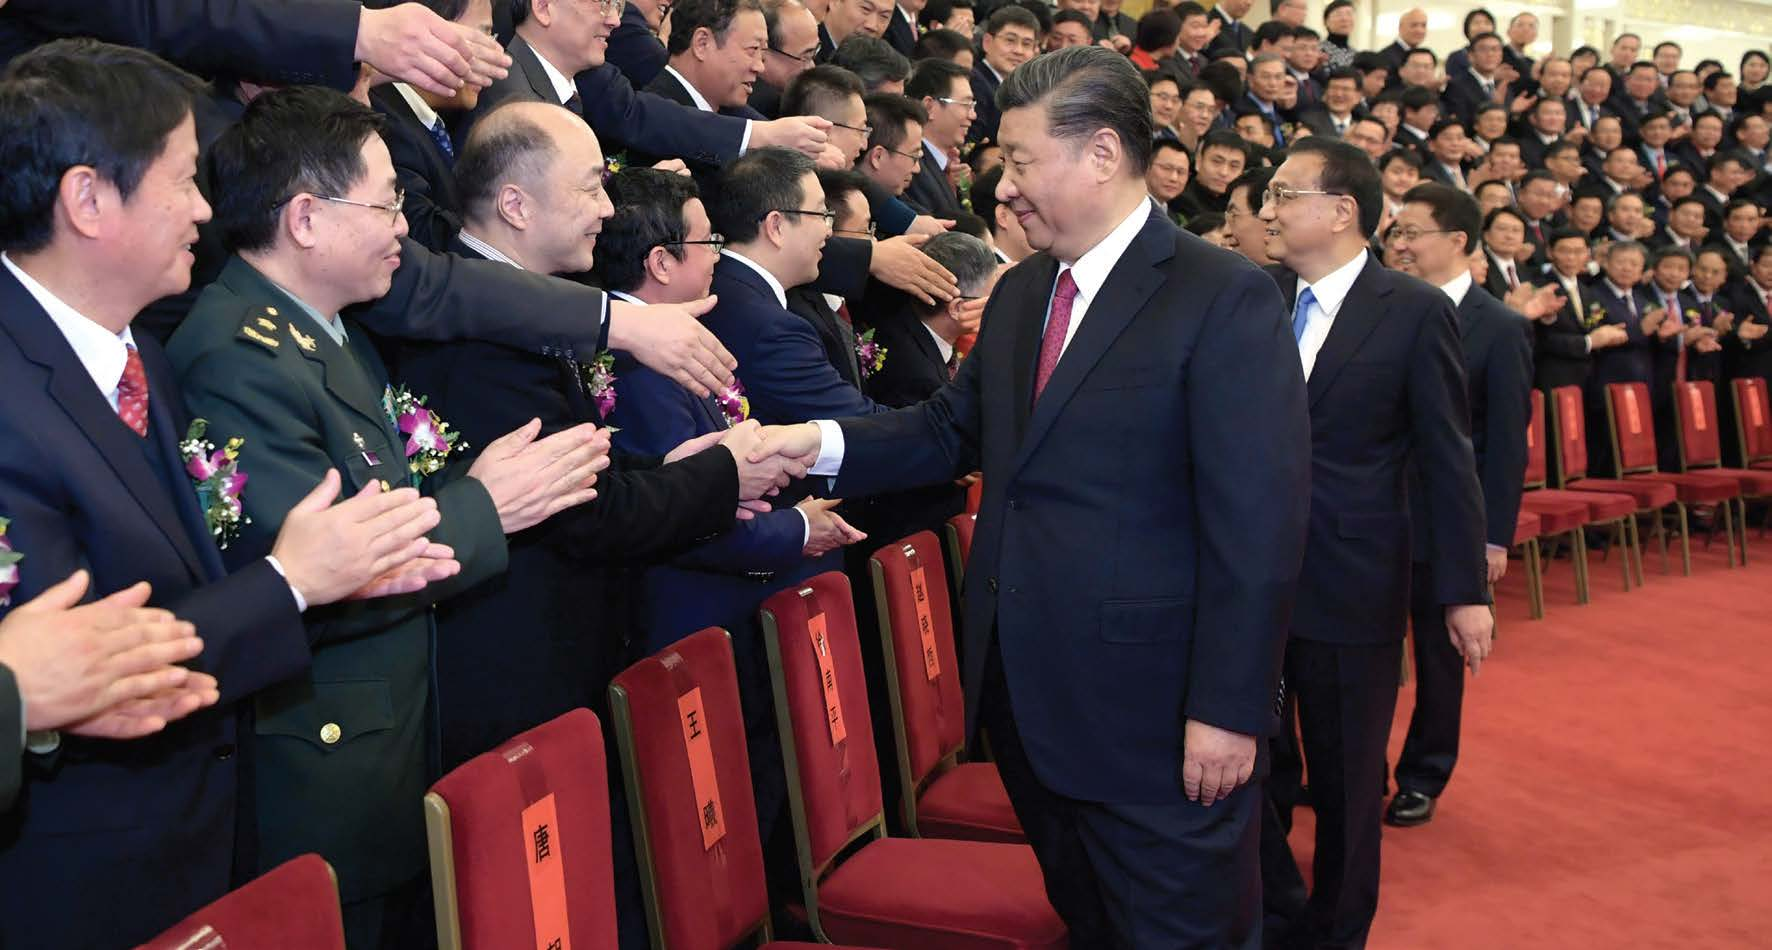 Chinese President Xi Jinping meet with representatives of the award winners before an annual ceremony to honor distinguished scientists, engineers and research achievements at the Great Hall of the People in Beijing, capital of China, Jan. 10, 2020. (Li Xueren/Xinhua)